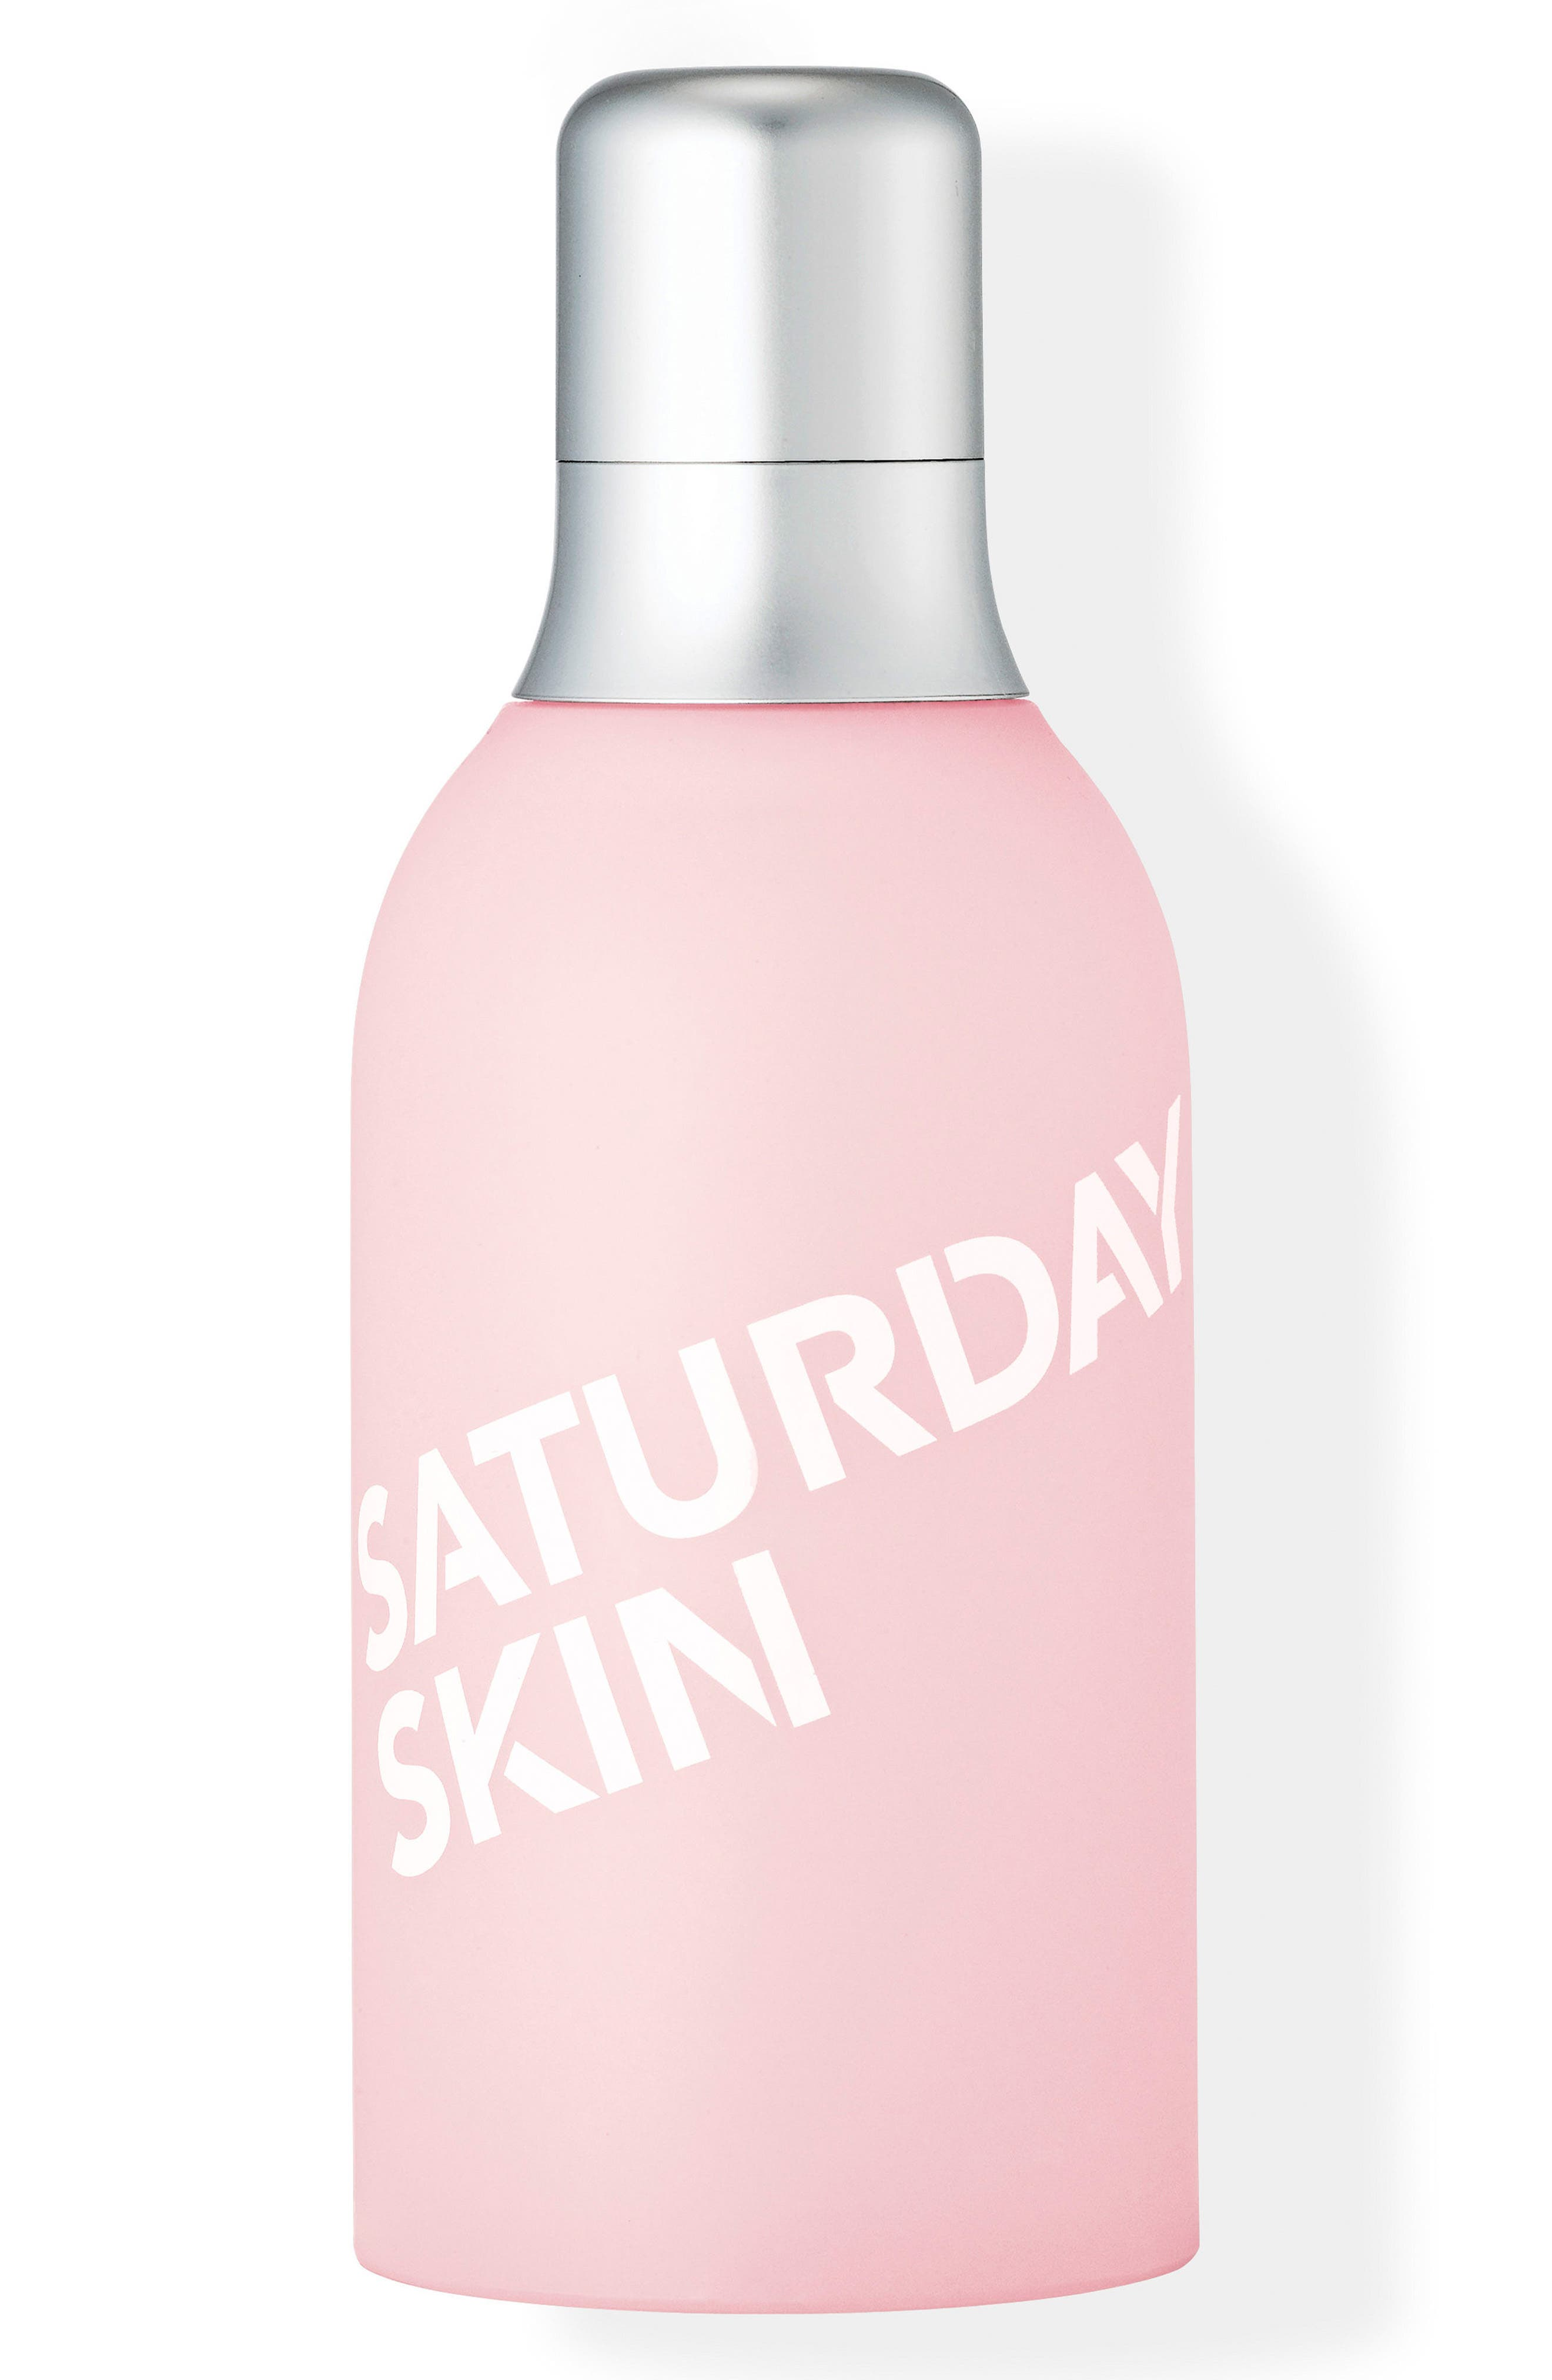 Daily Dew Hydrating Essence Mist,                             Main thumbnail 1, color,                             NO COLOR